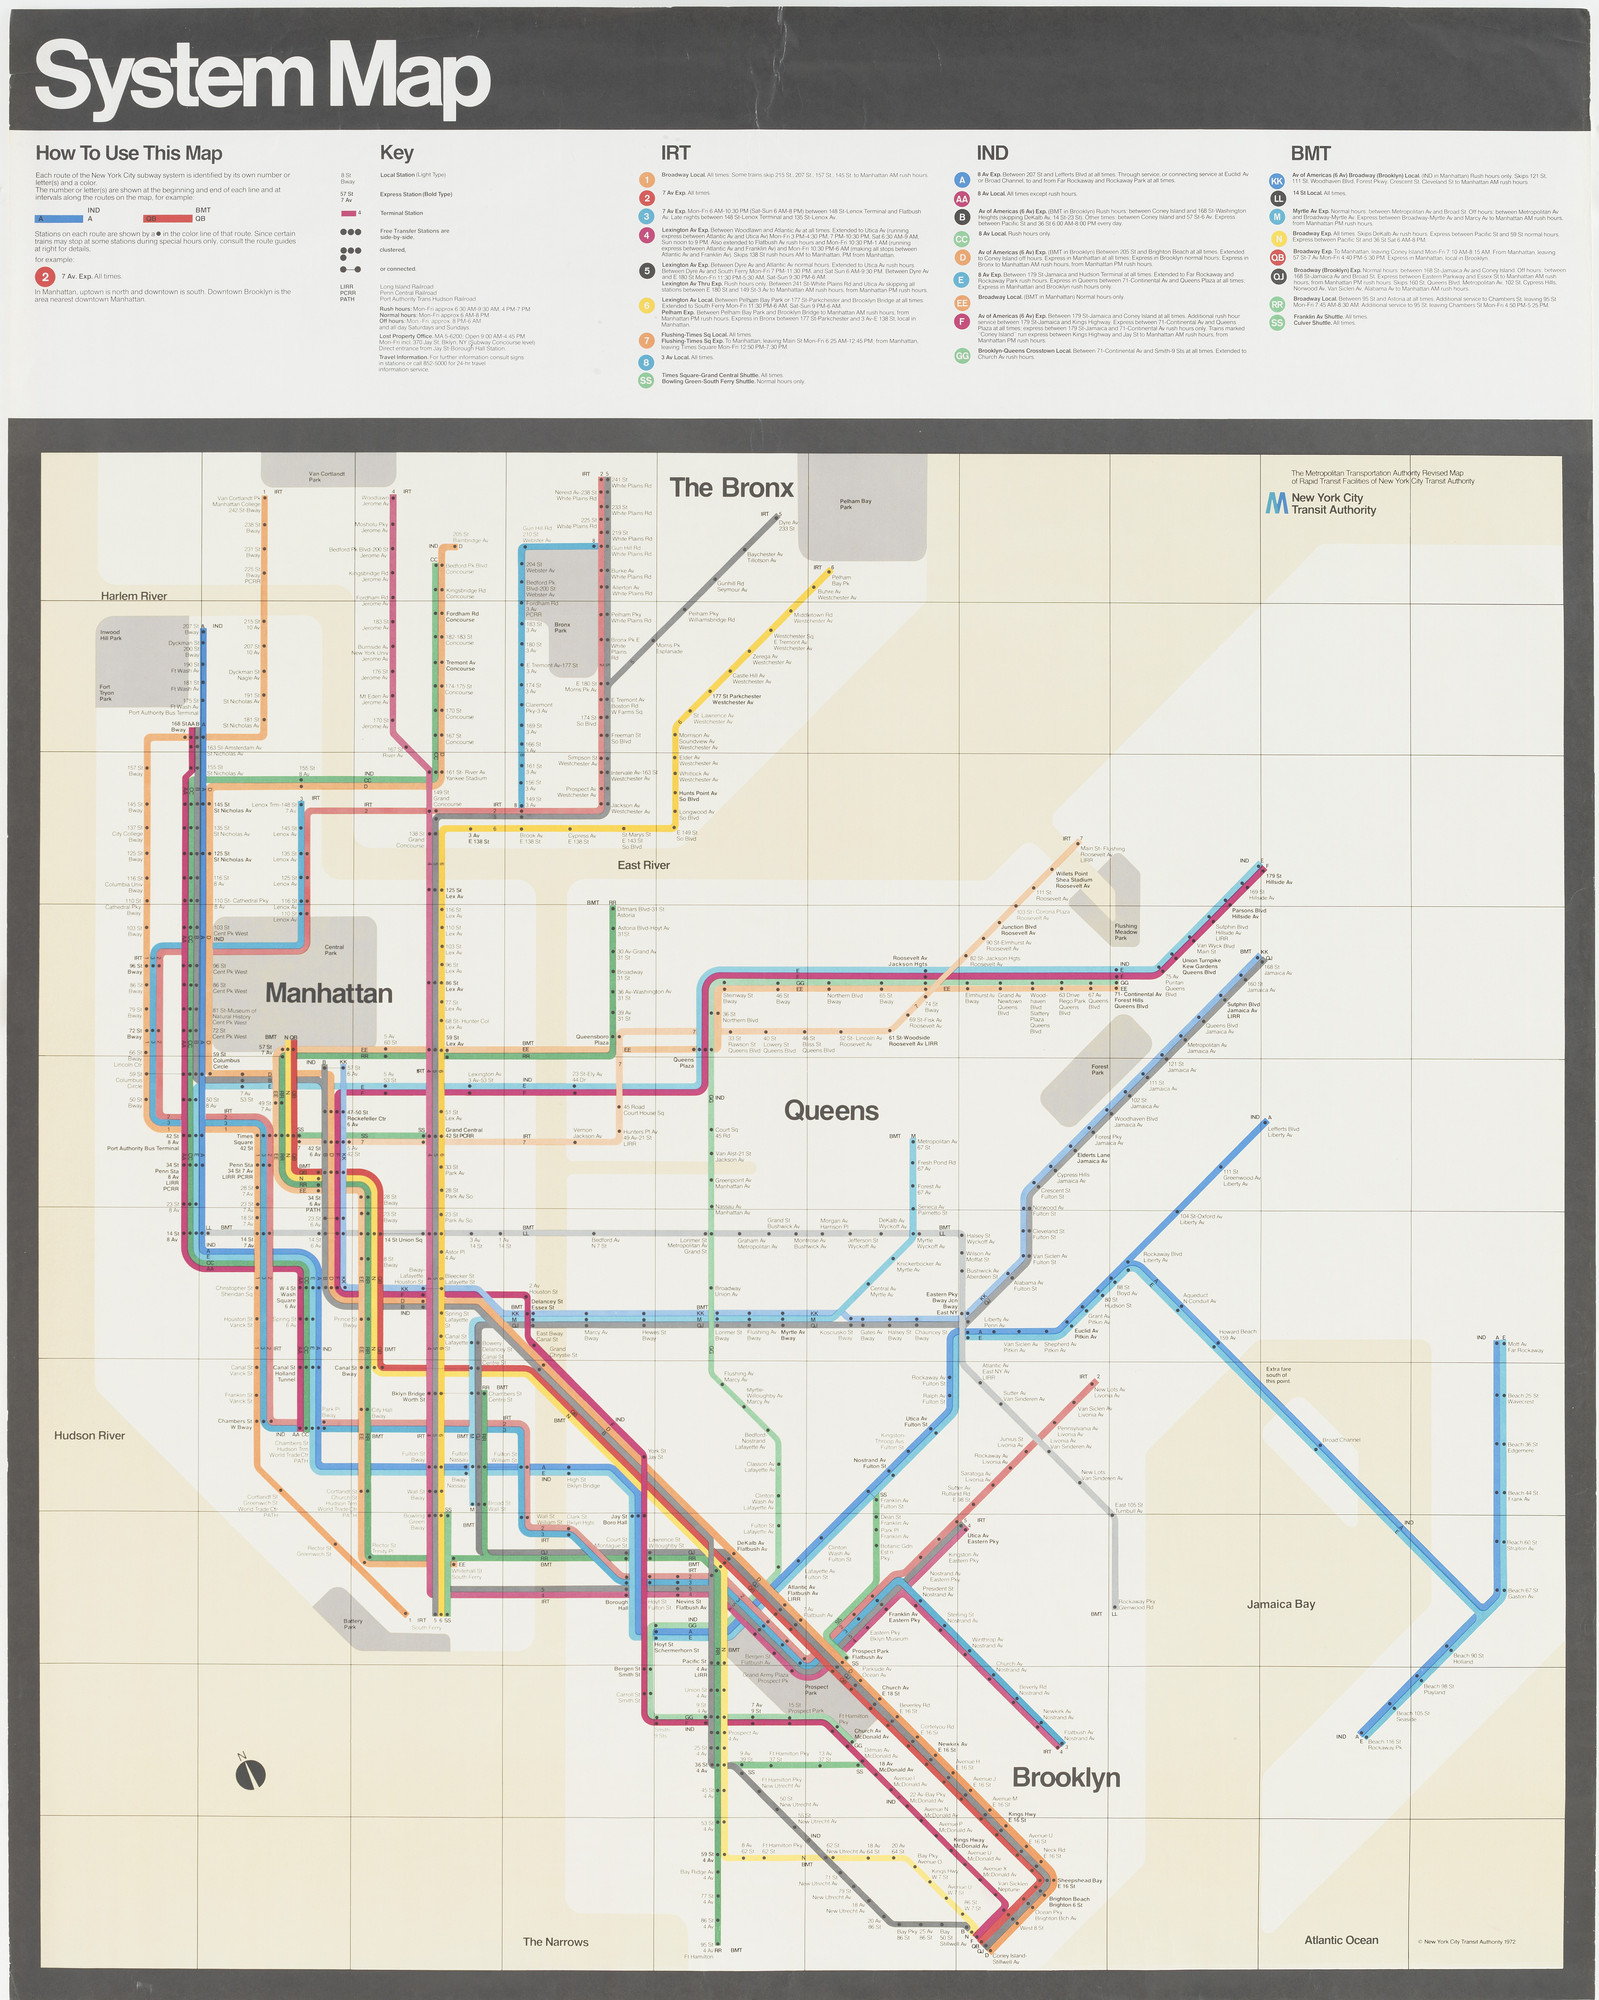 Latest Nyc Subway Map.Massimo Vignelli Joan Charysyn Bob Noorda Unimark International